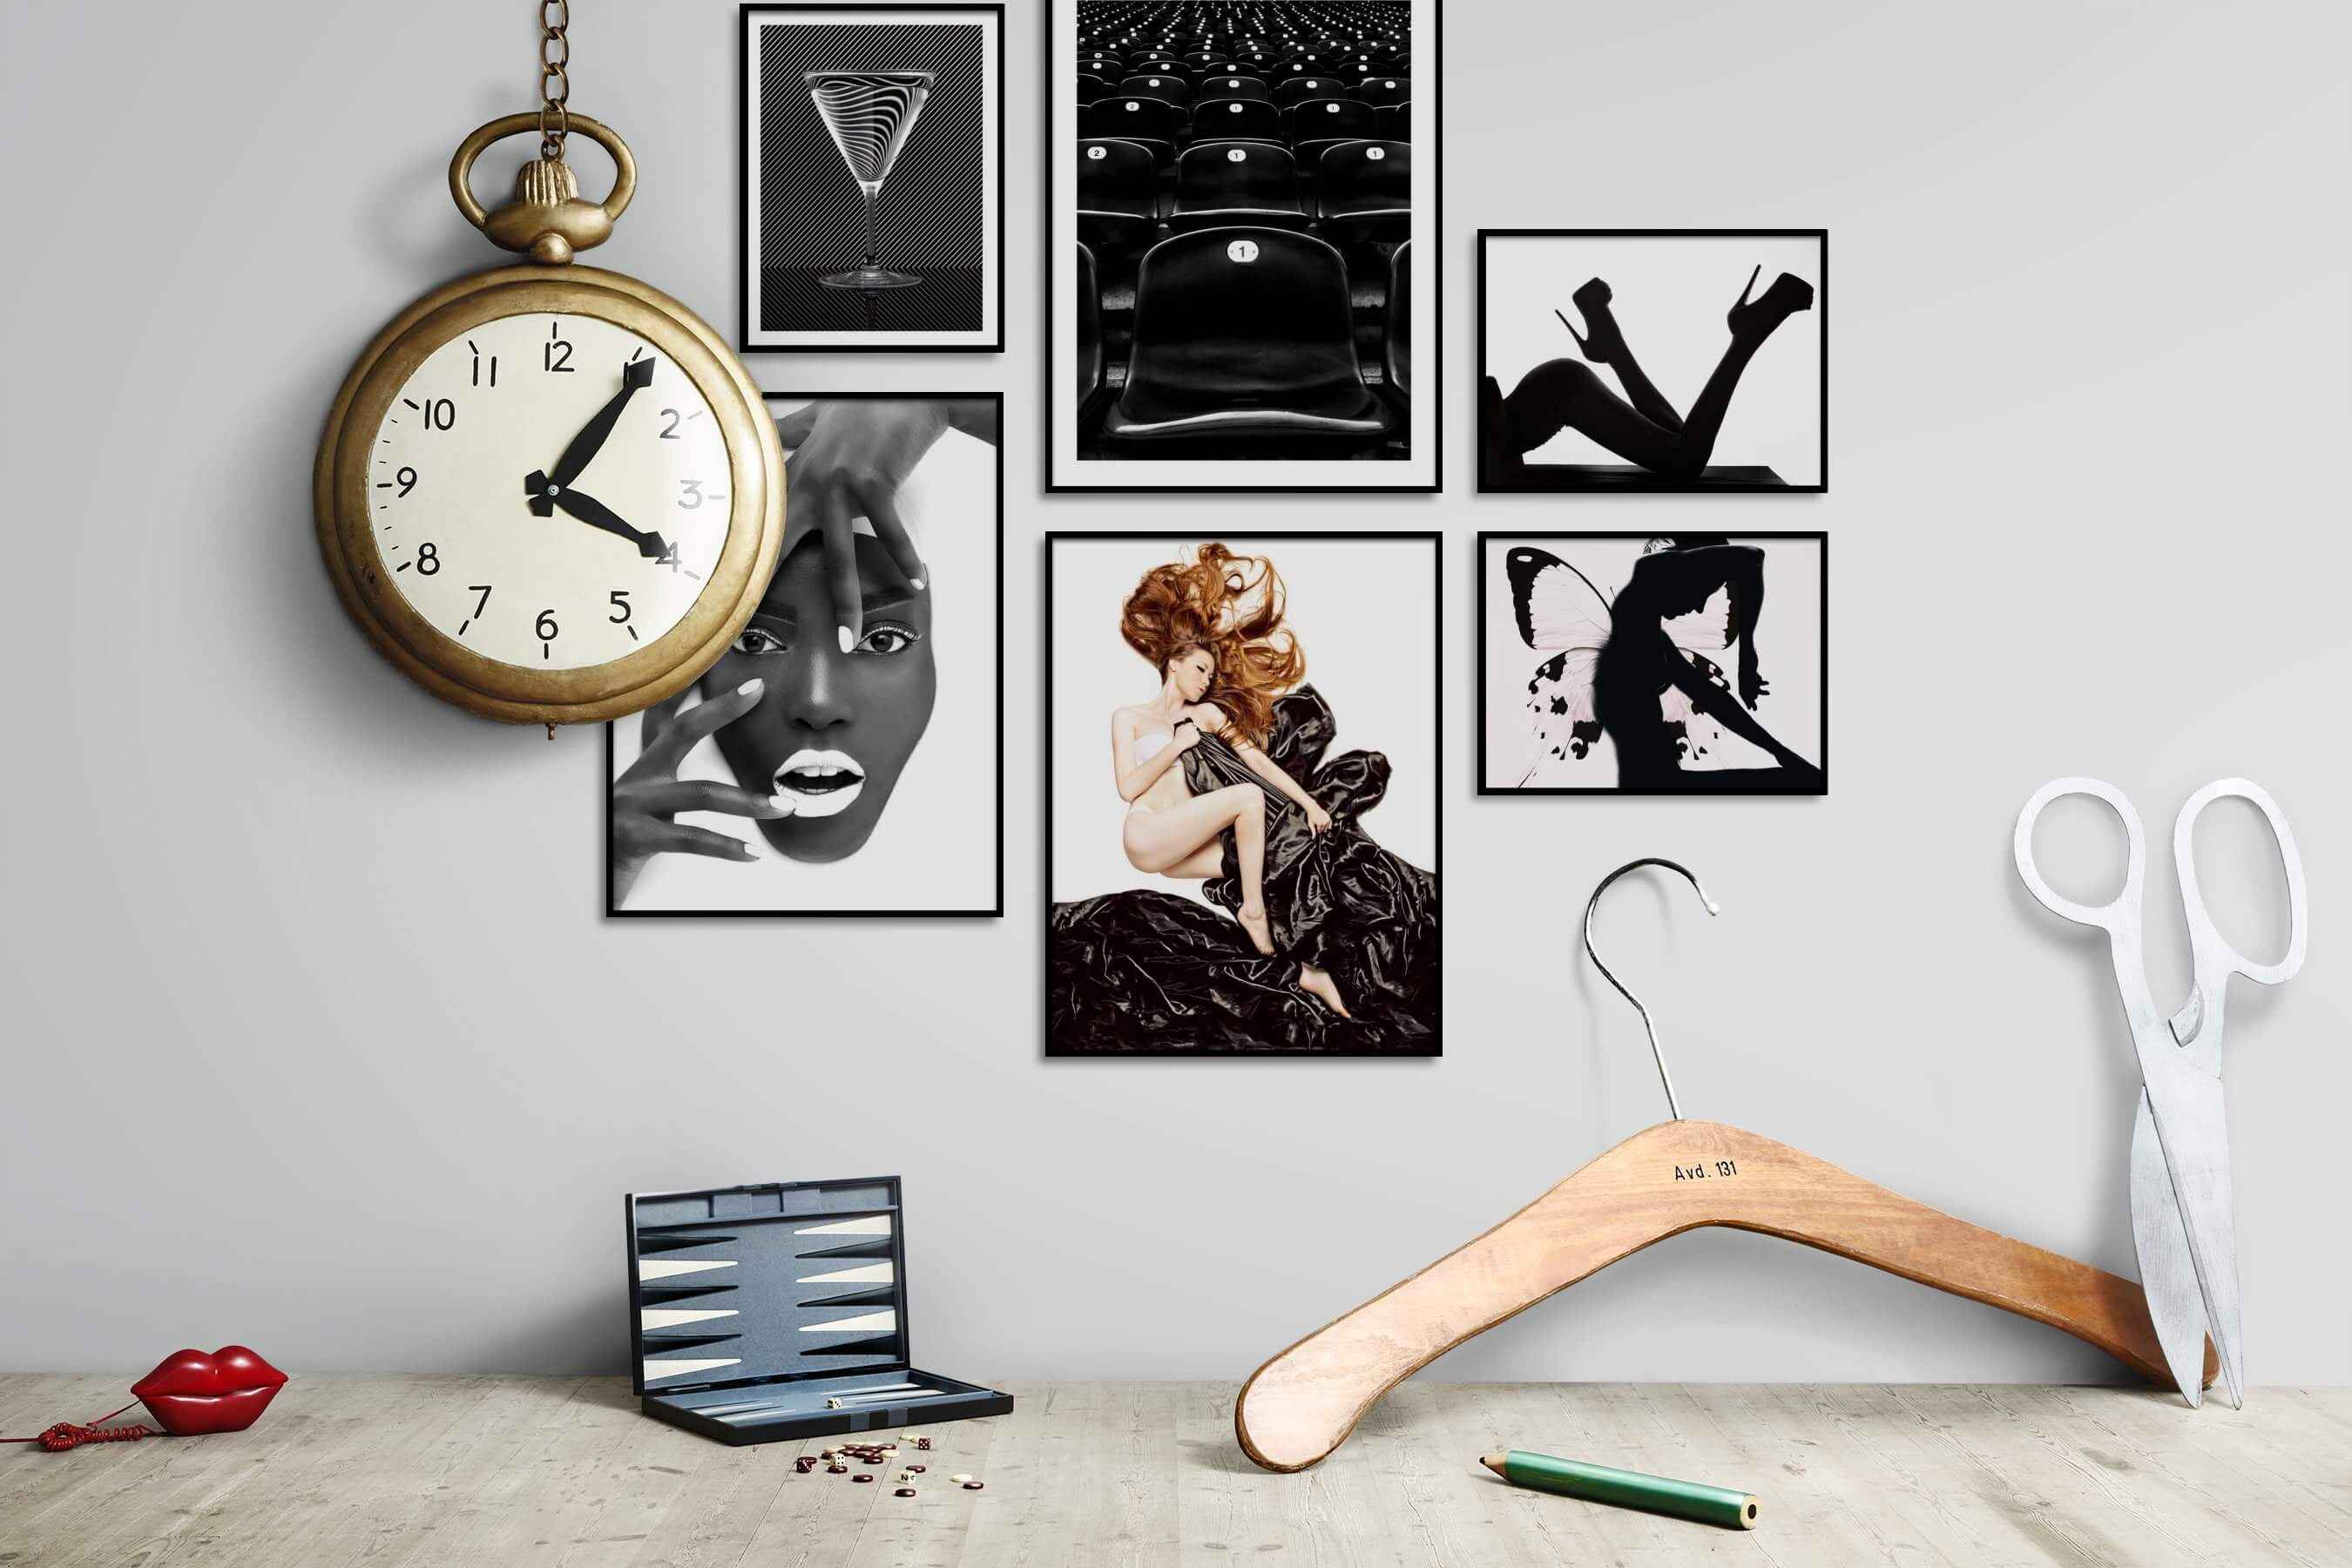 Gallery wall idea with six framed pictures arranged on a wall depicting Black & White, For the Maximalist, Fashion & Beauty, Bright Tones, For the Moderate, and For the Minimalist